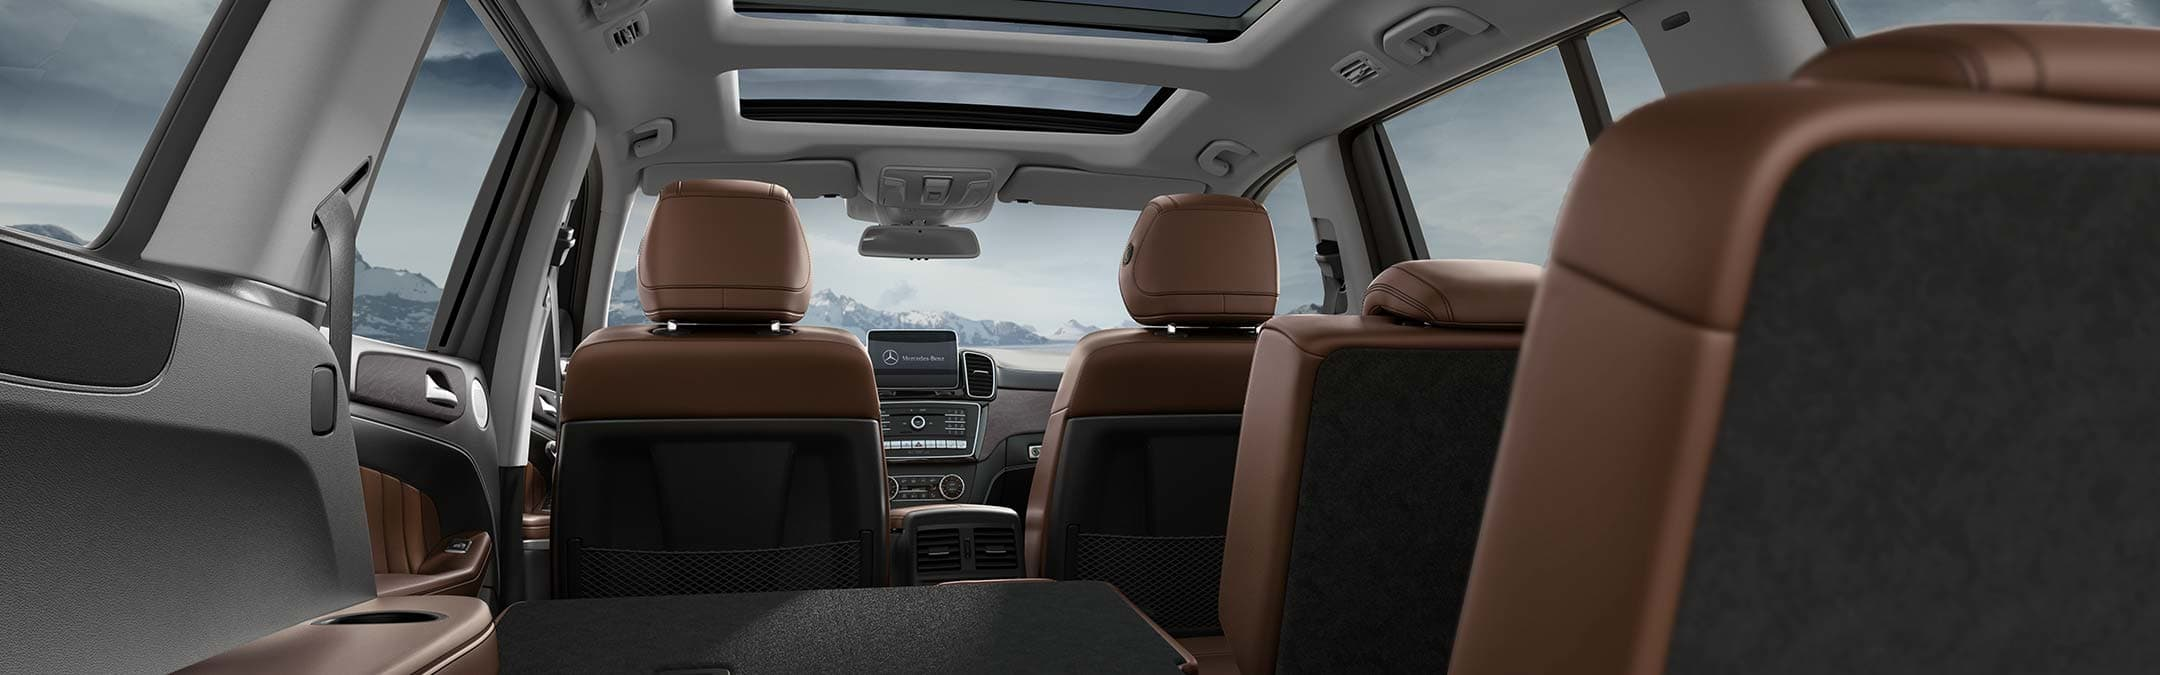 2019 Mercedes GLS Interior